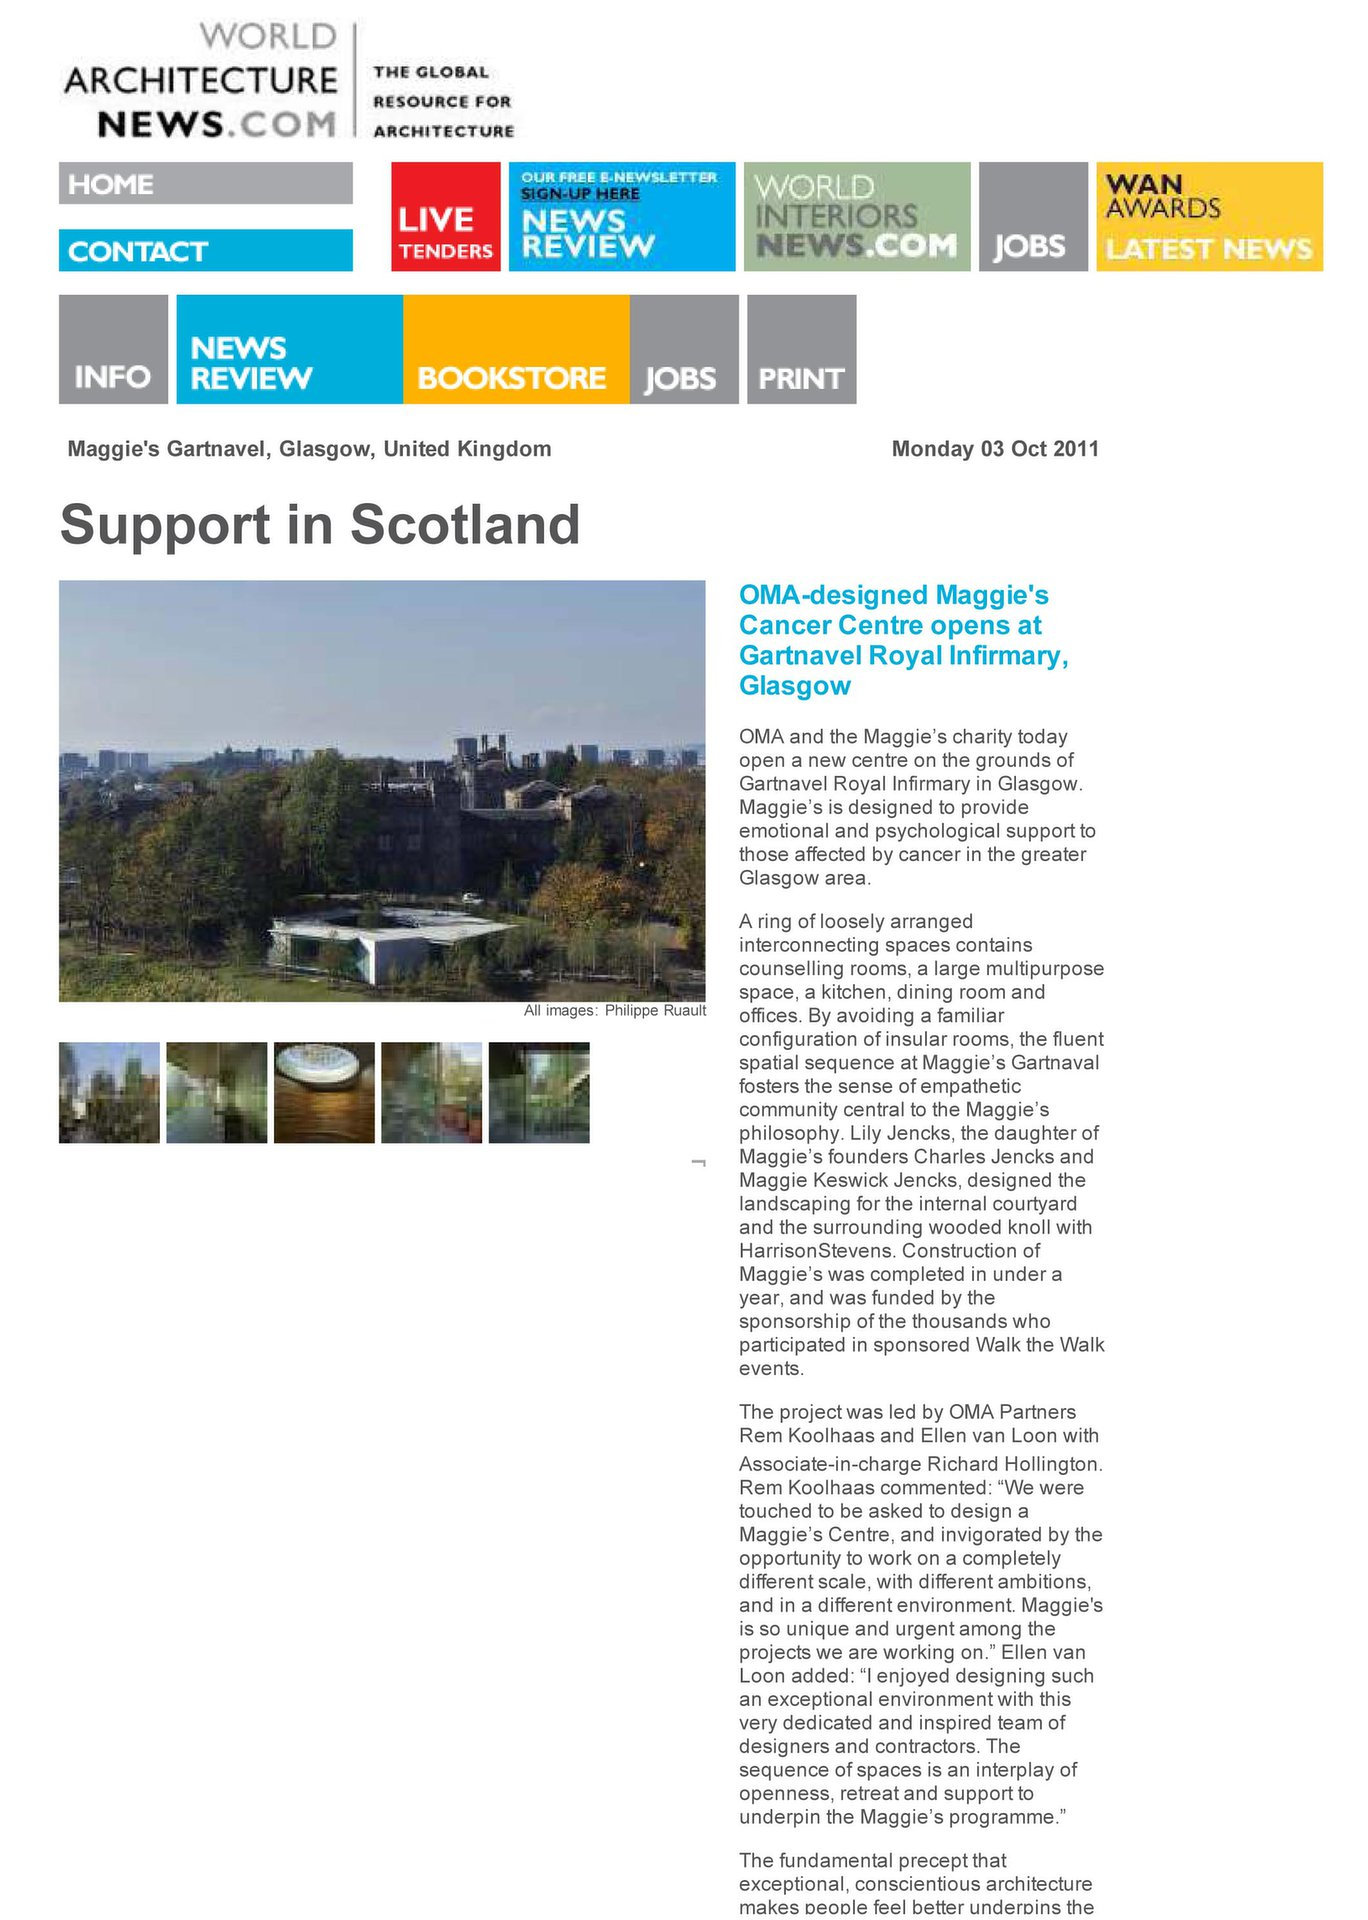 SUPPORT IN SCOTLAND